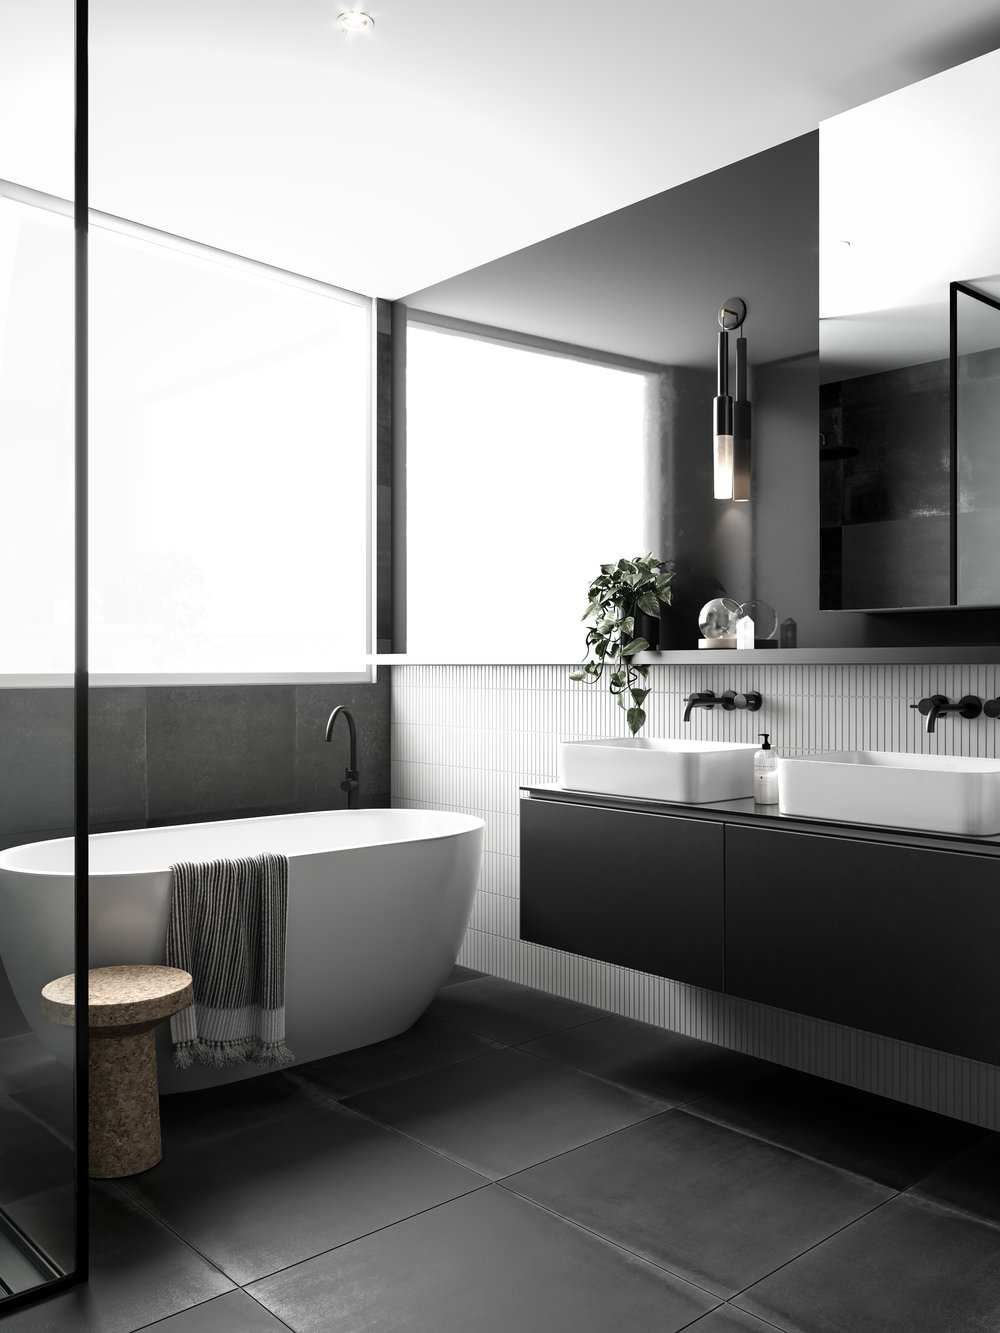 170830_INTERIOR_BATHROOM_A_02_.jpg